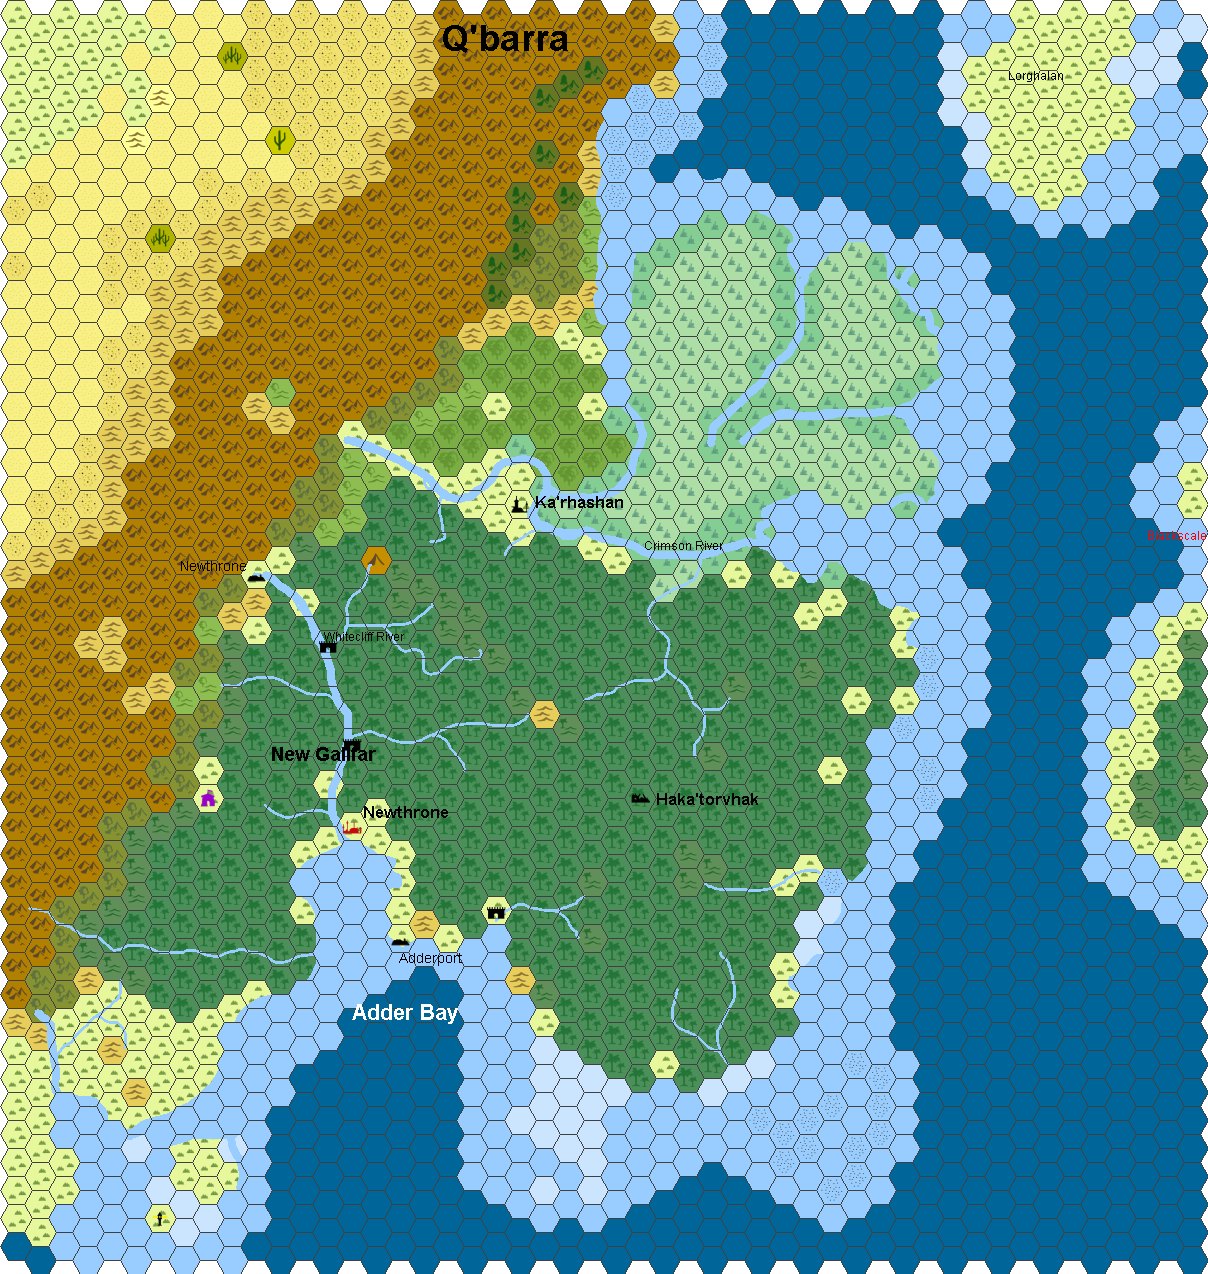 Hex Map Of Q Barra Created In Hexographer Free And Pro Versions Available At